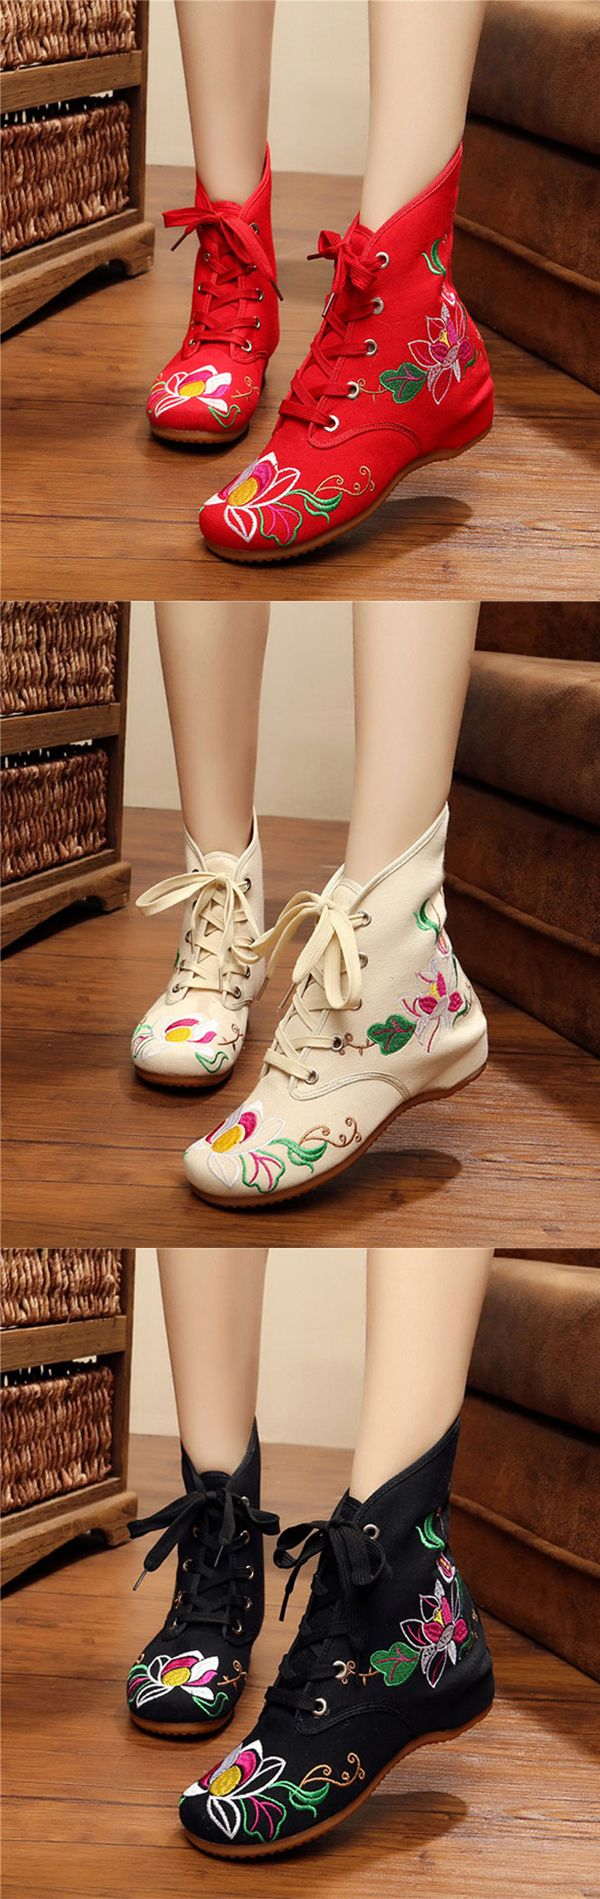 US$22.61 Floral Print Embroidery Lace Up Retro Wedge Heel Boots